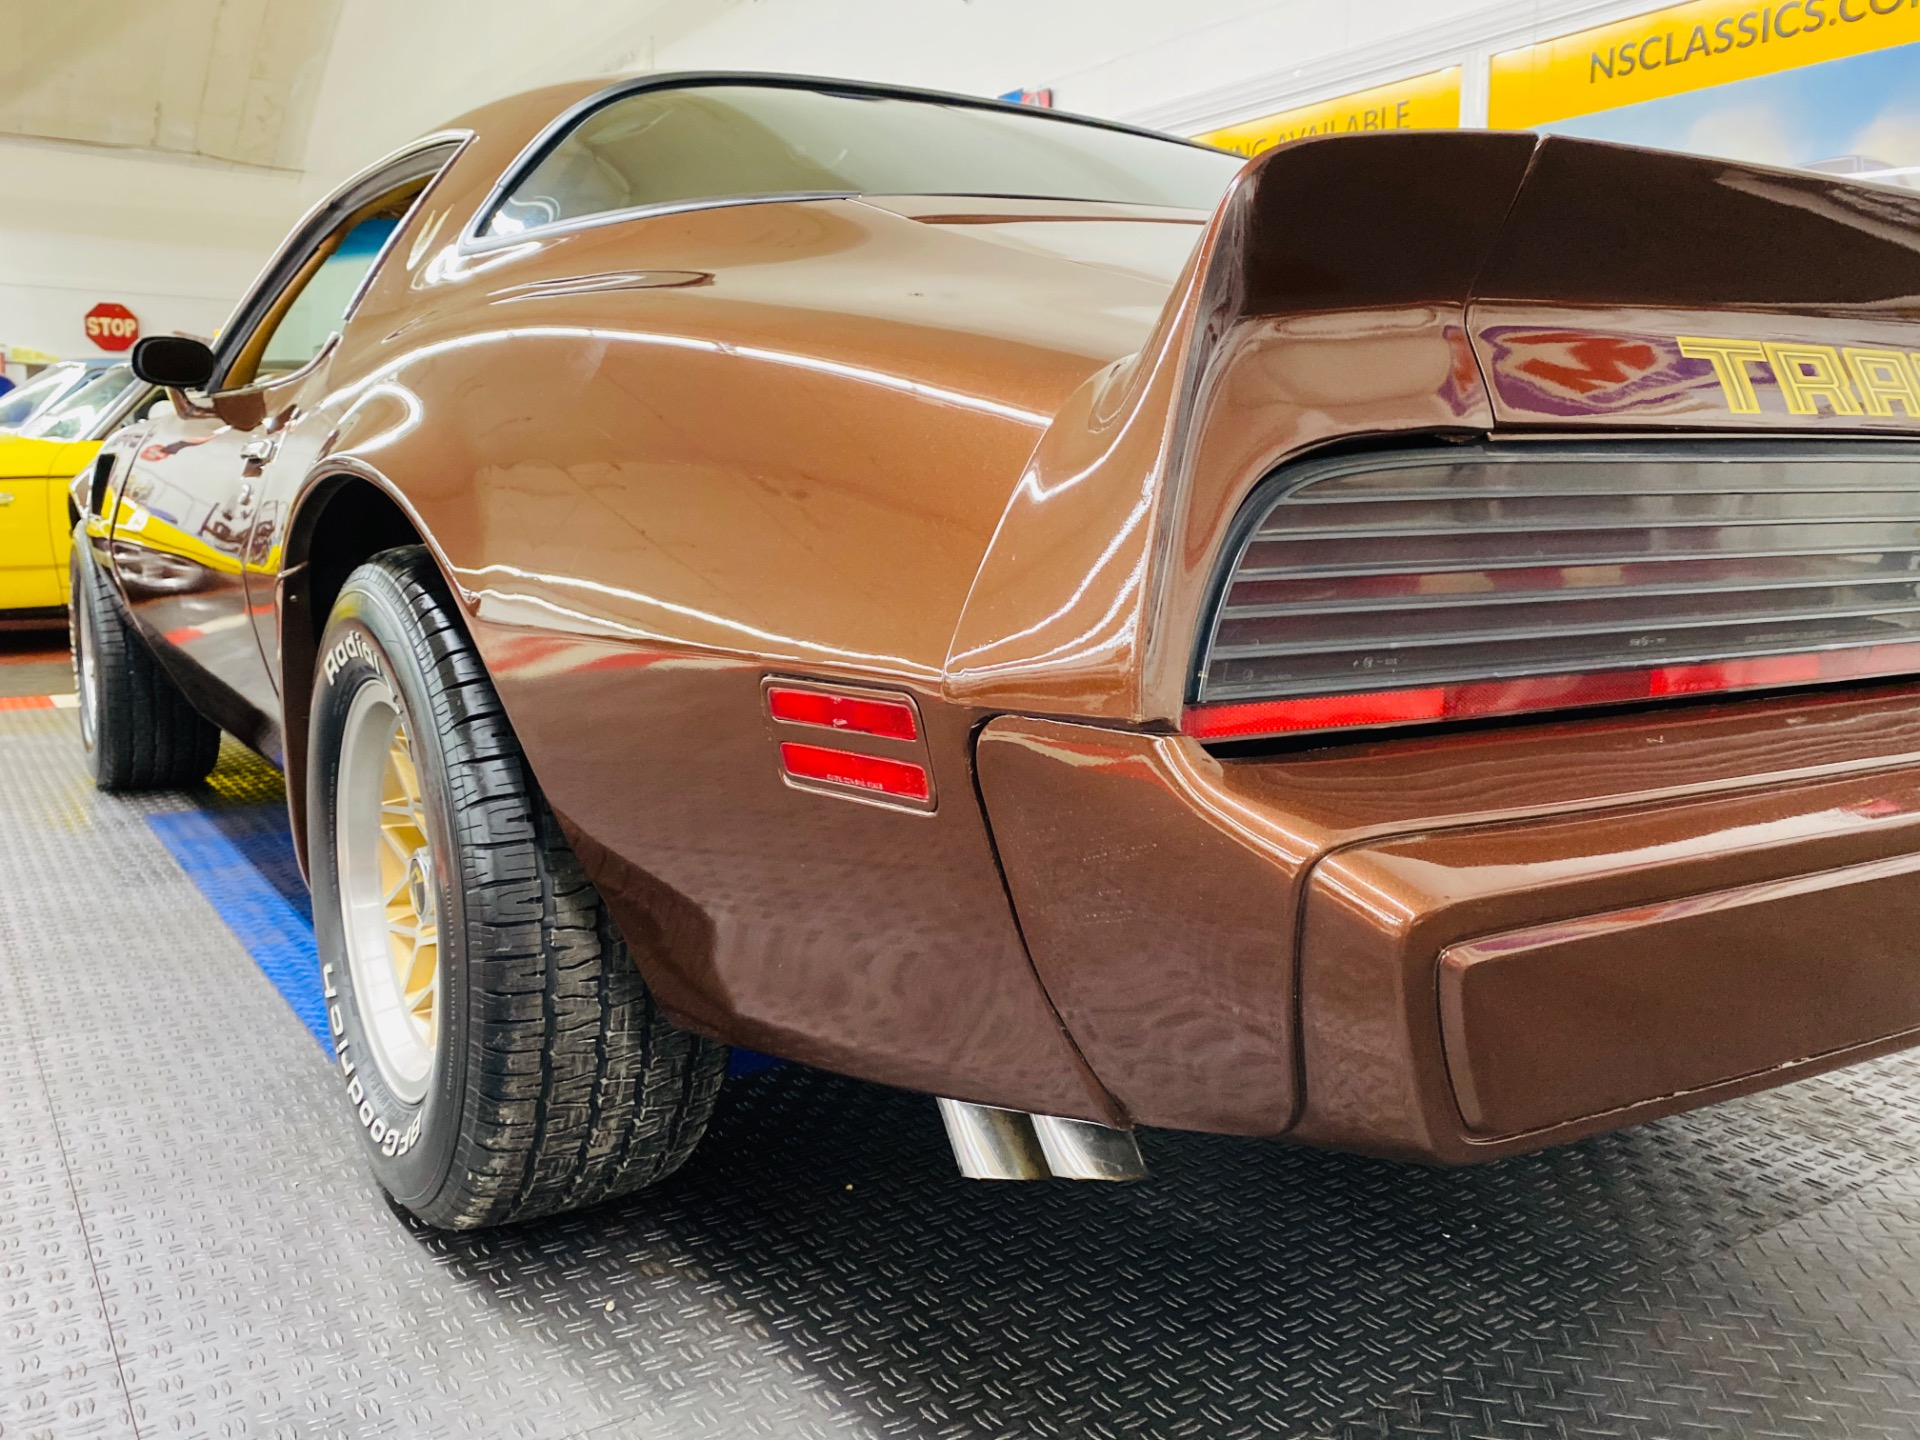 Used 1979 Pontiac Trans Am - 6.6L ENGINE - VERY CLEAN BODY - NICE PAINT - SEE VIDEO | Mundelein, IL